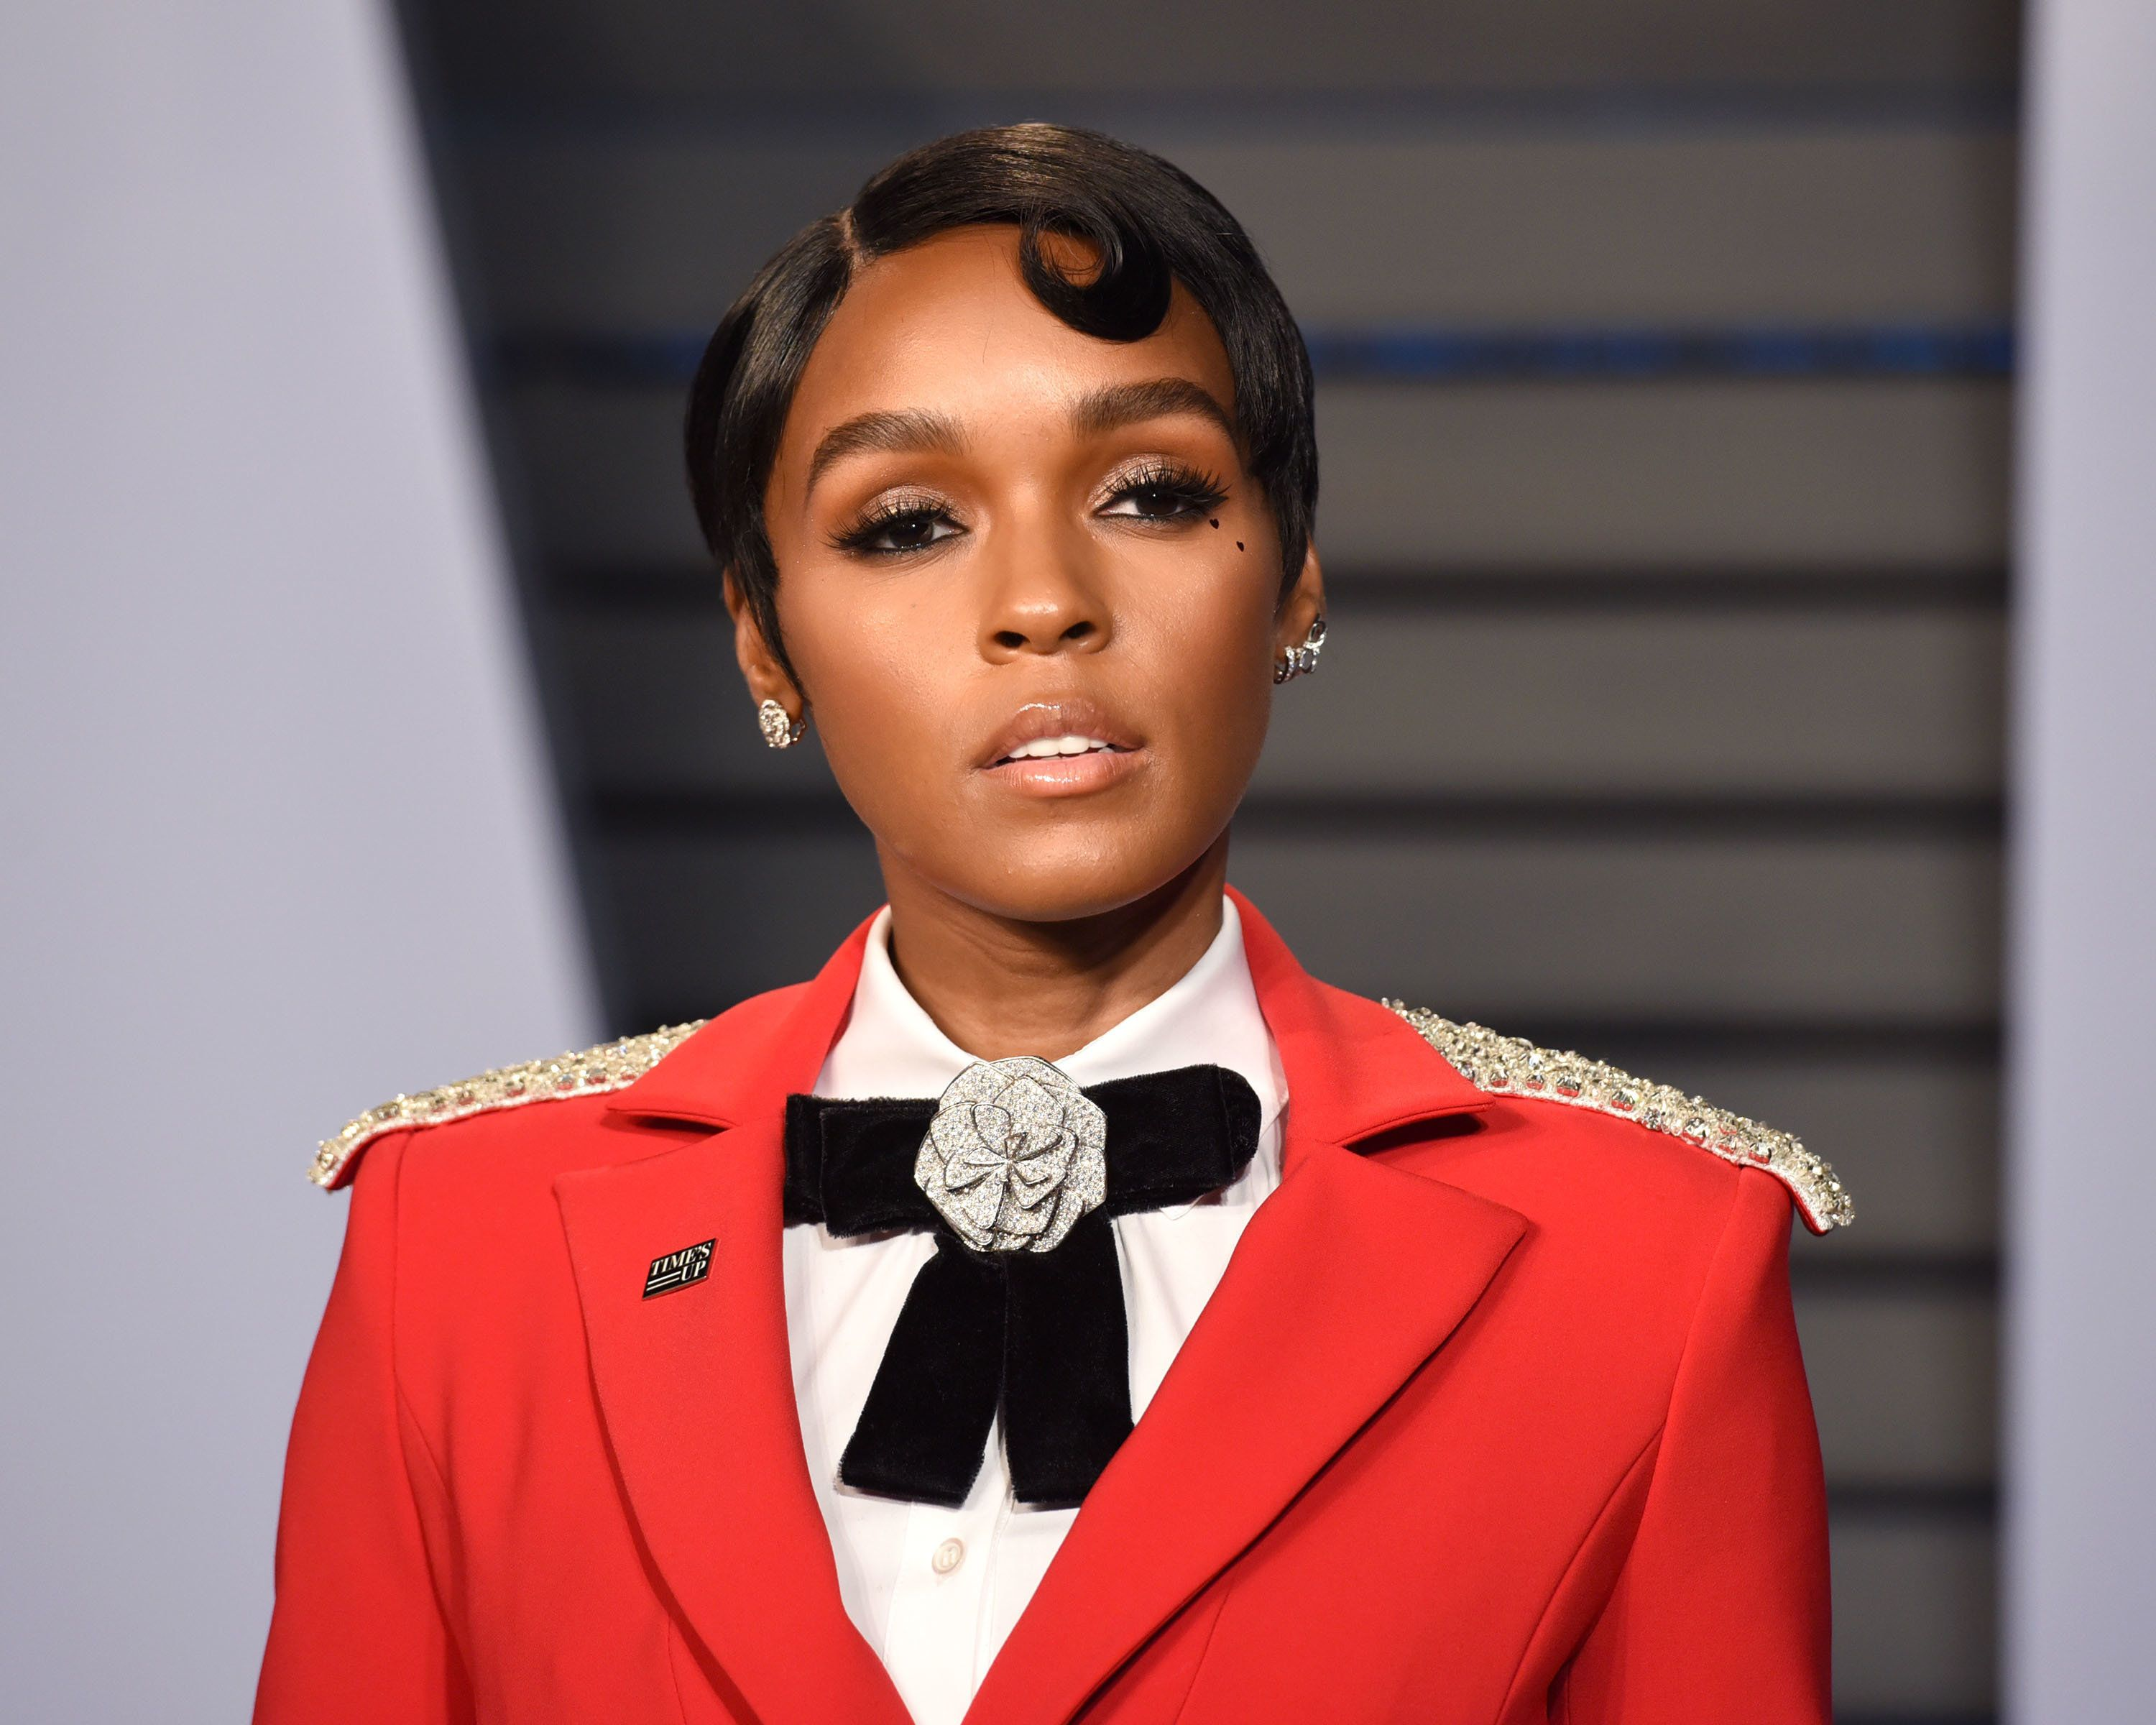 Janelle Monáe Frees Herself as She covers Rolling Stone Magazine